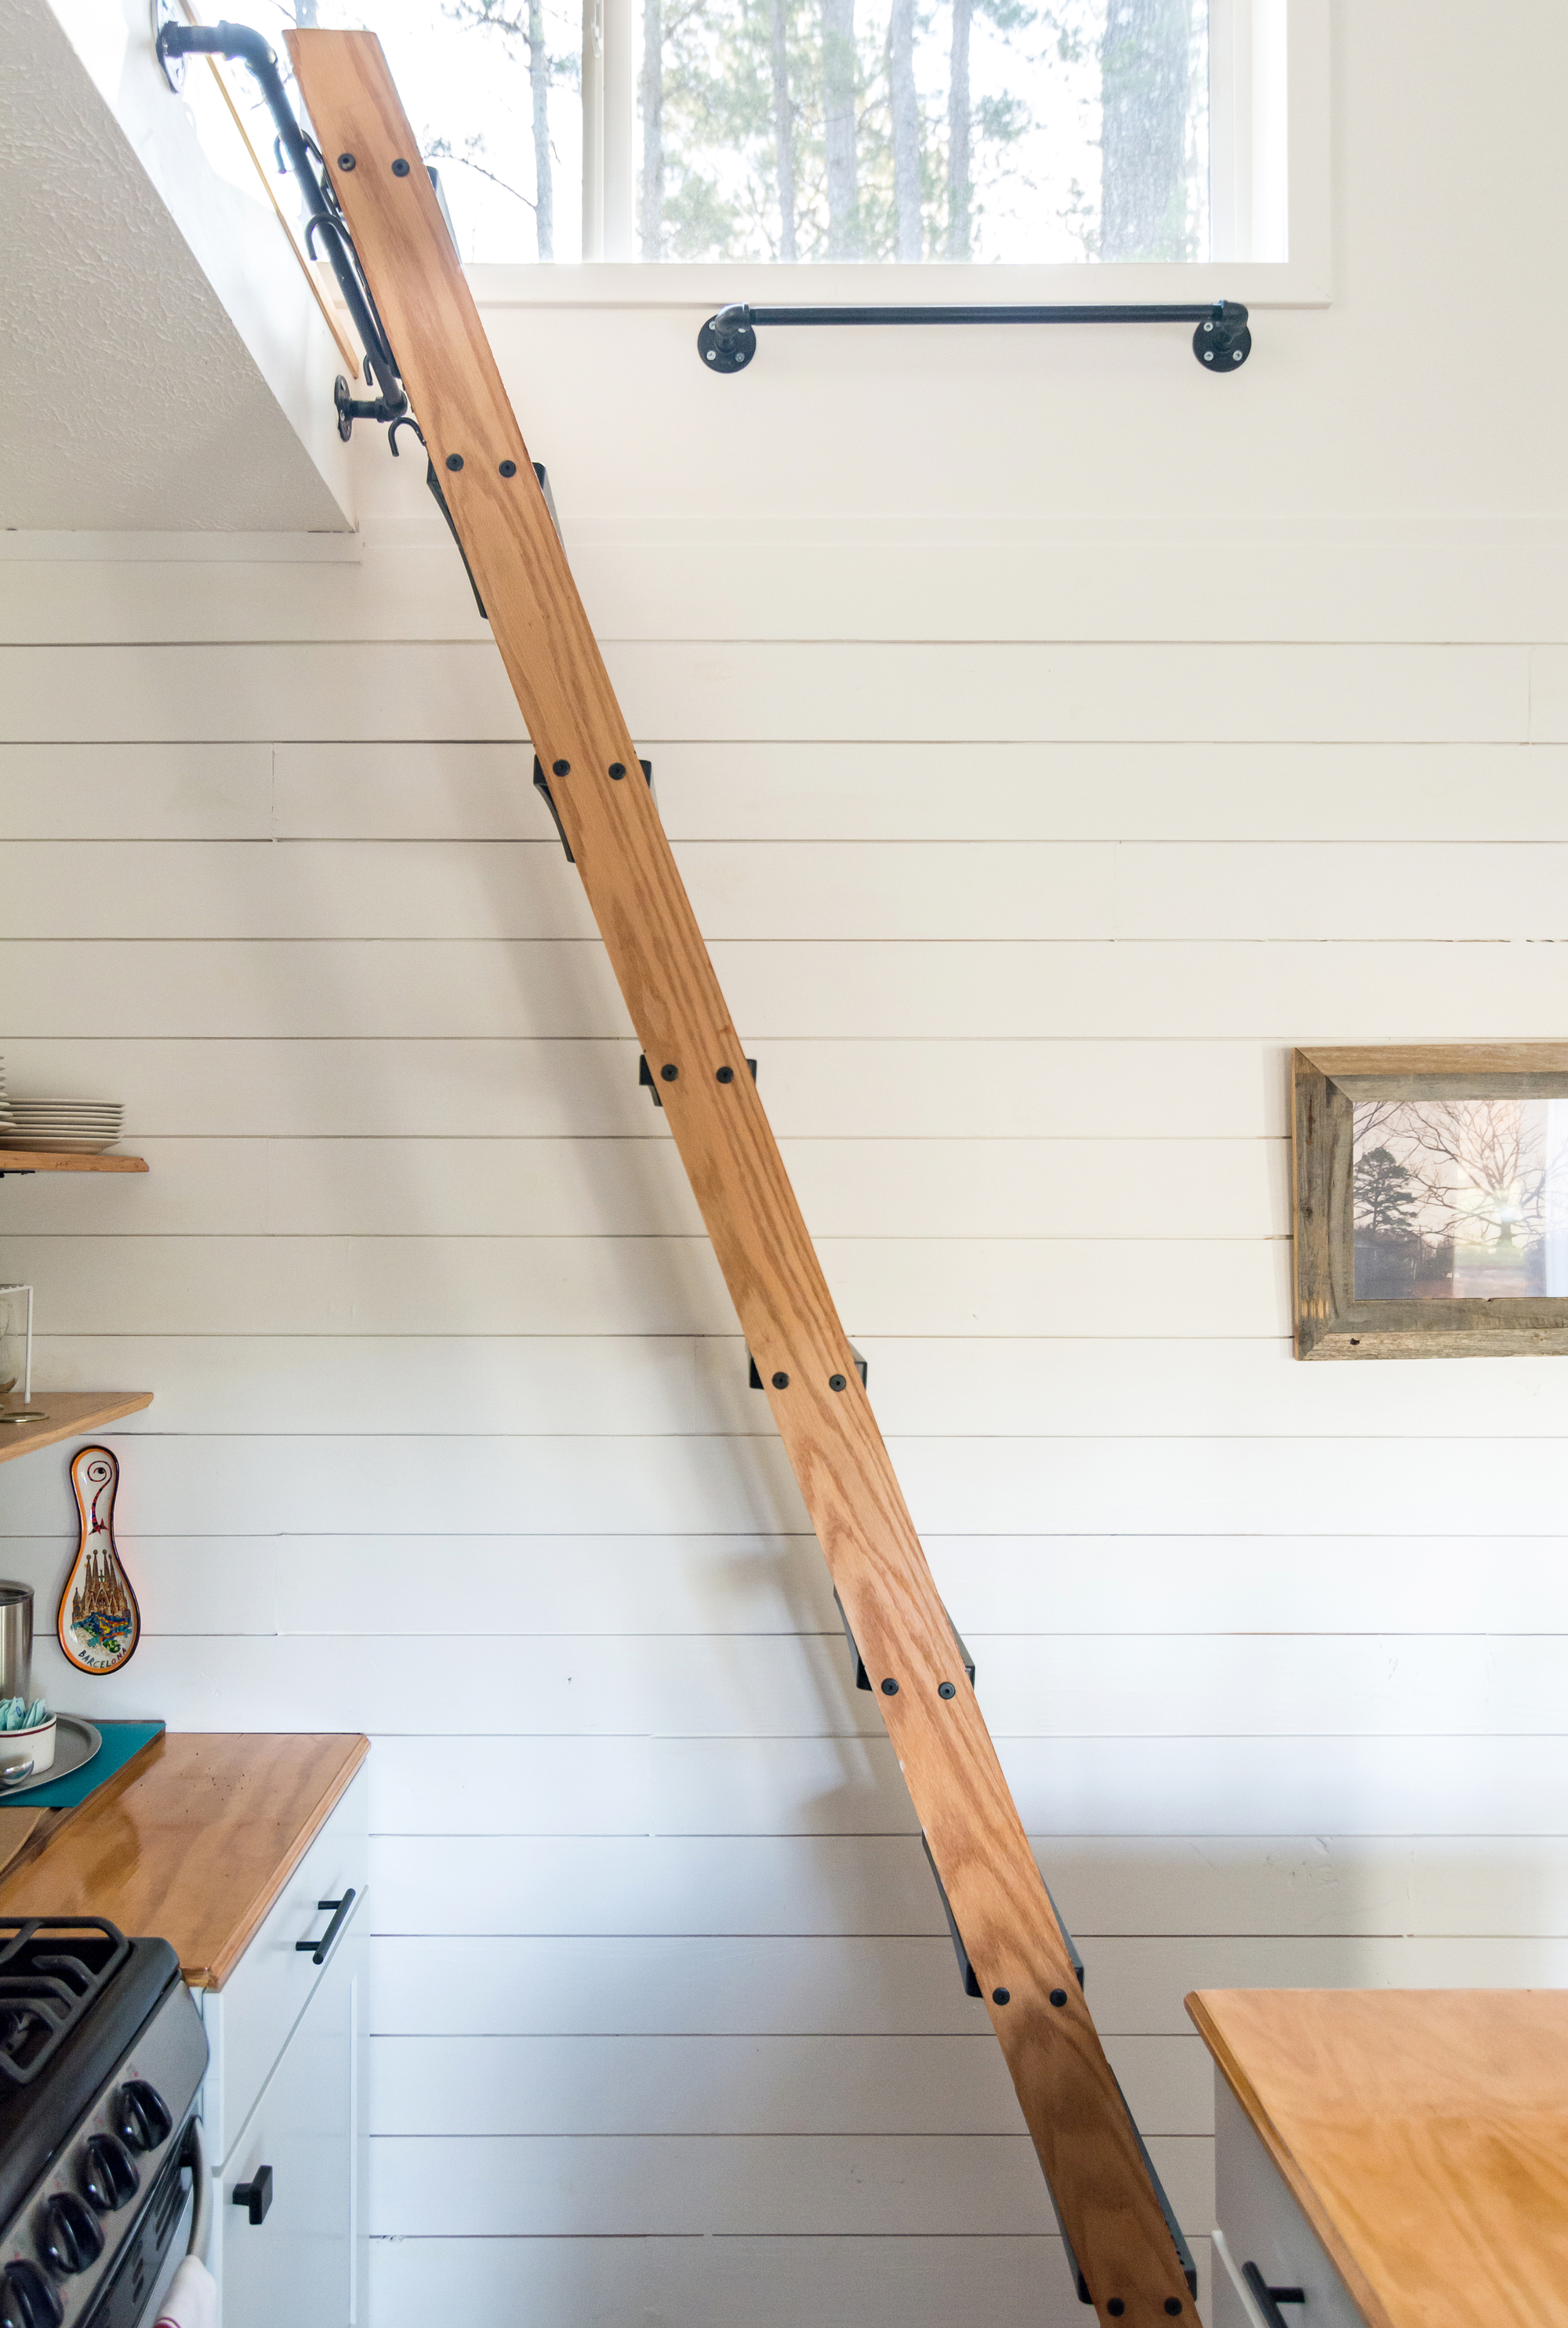 Ladder to access the upper level loft sleeping area